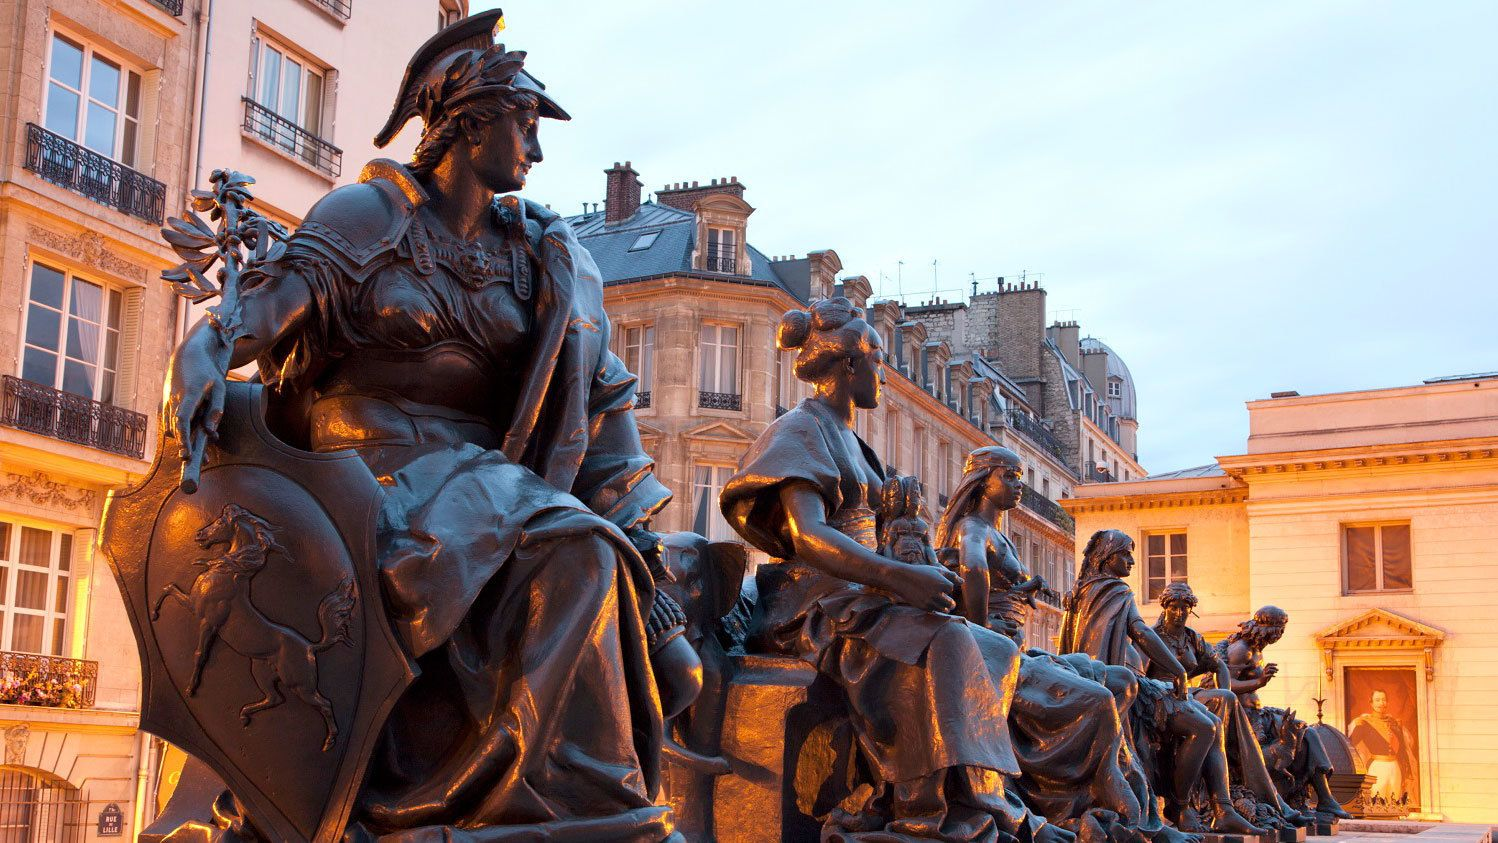 Classical style bronze statues infront of the Orsay museum